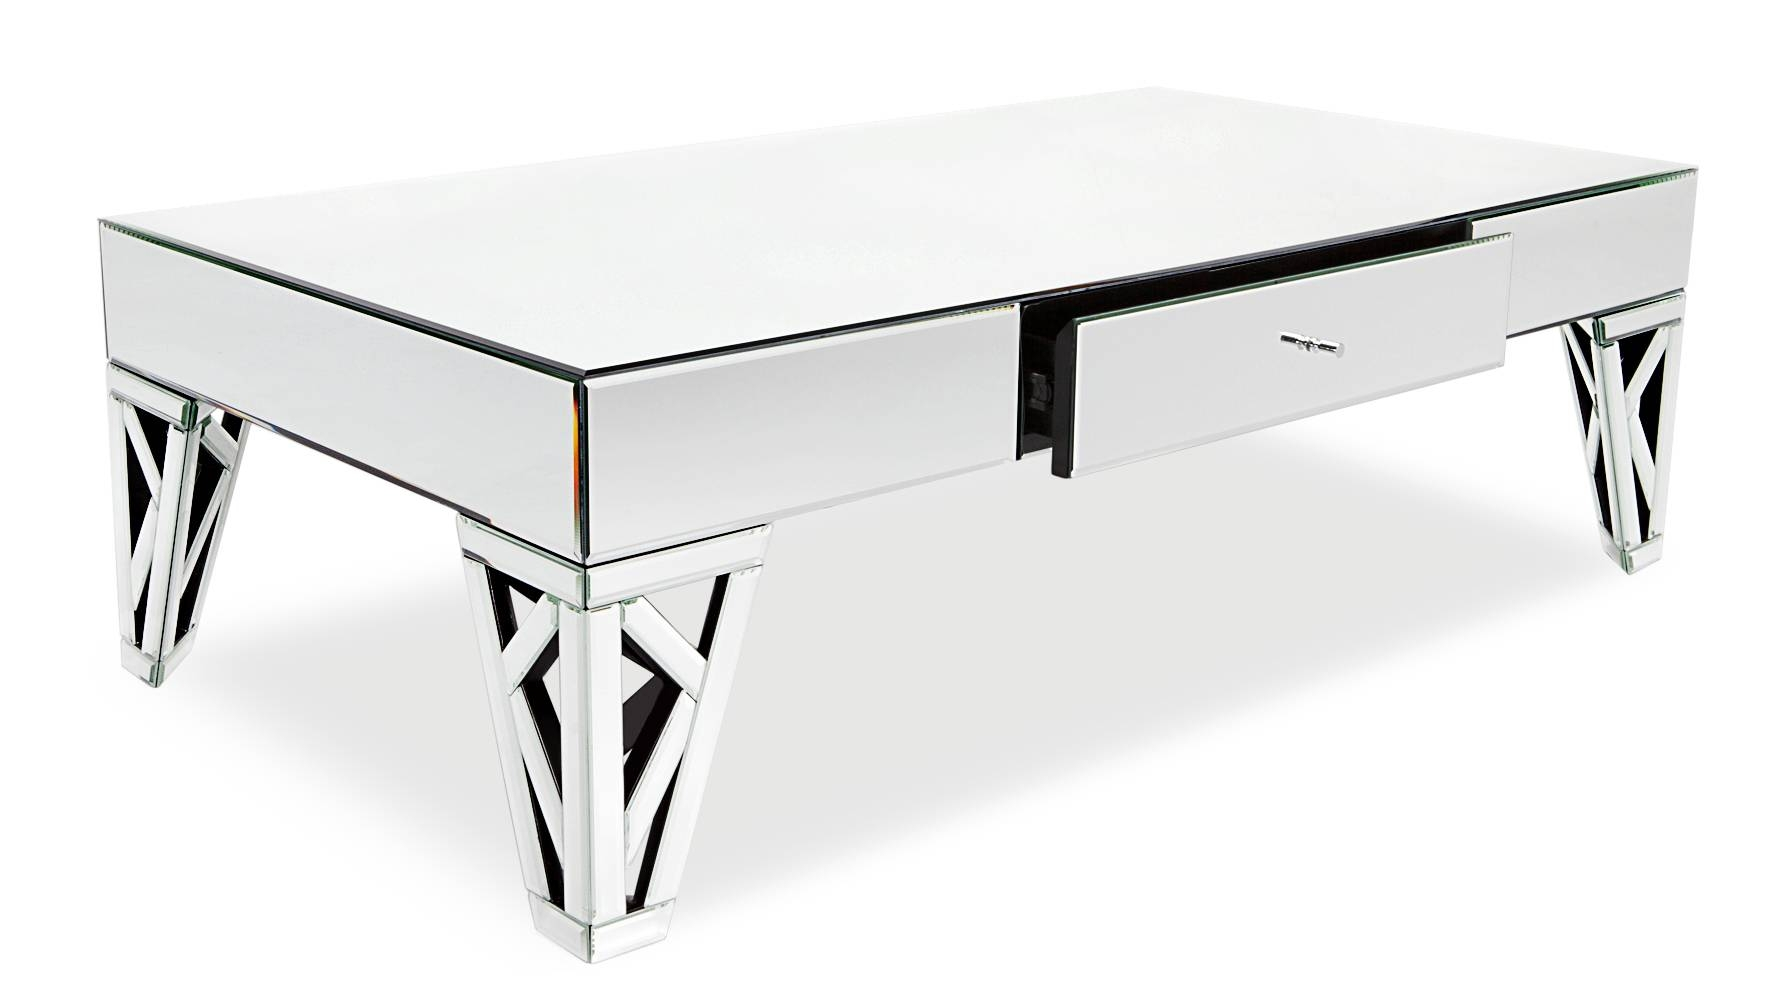 Azure Mirrored Glass Coffee Table | Zuri Furniture throughout Coffee Tables Mirrored (Image 4 of 30)